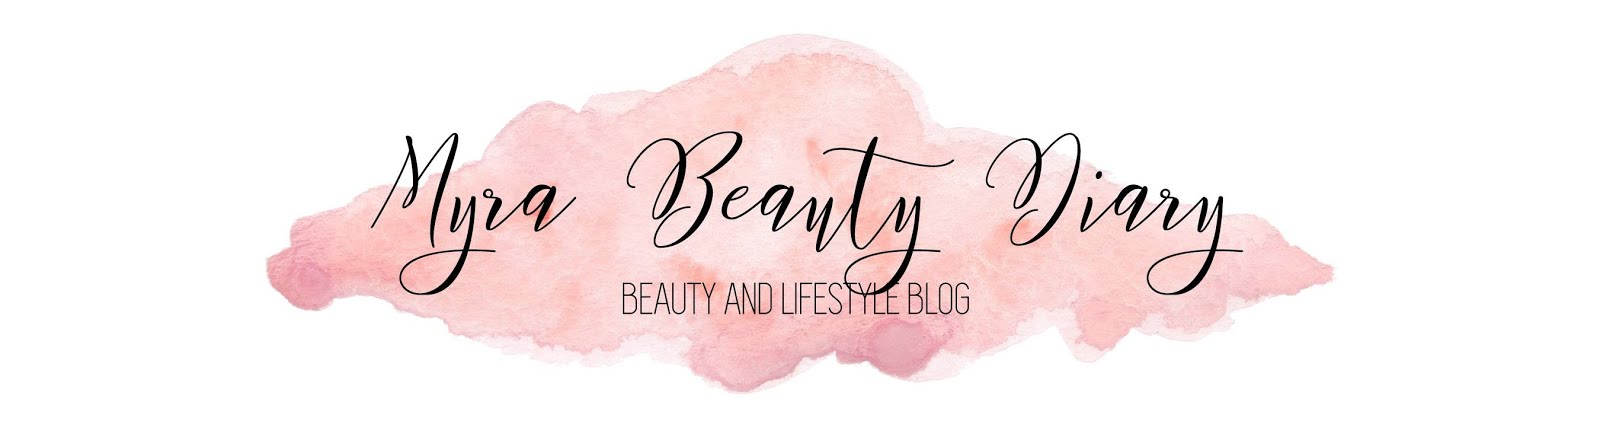 MYRA BEAUTY DIARY